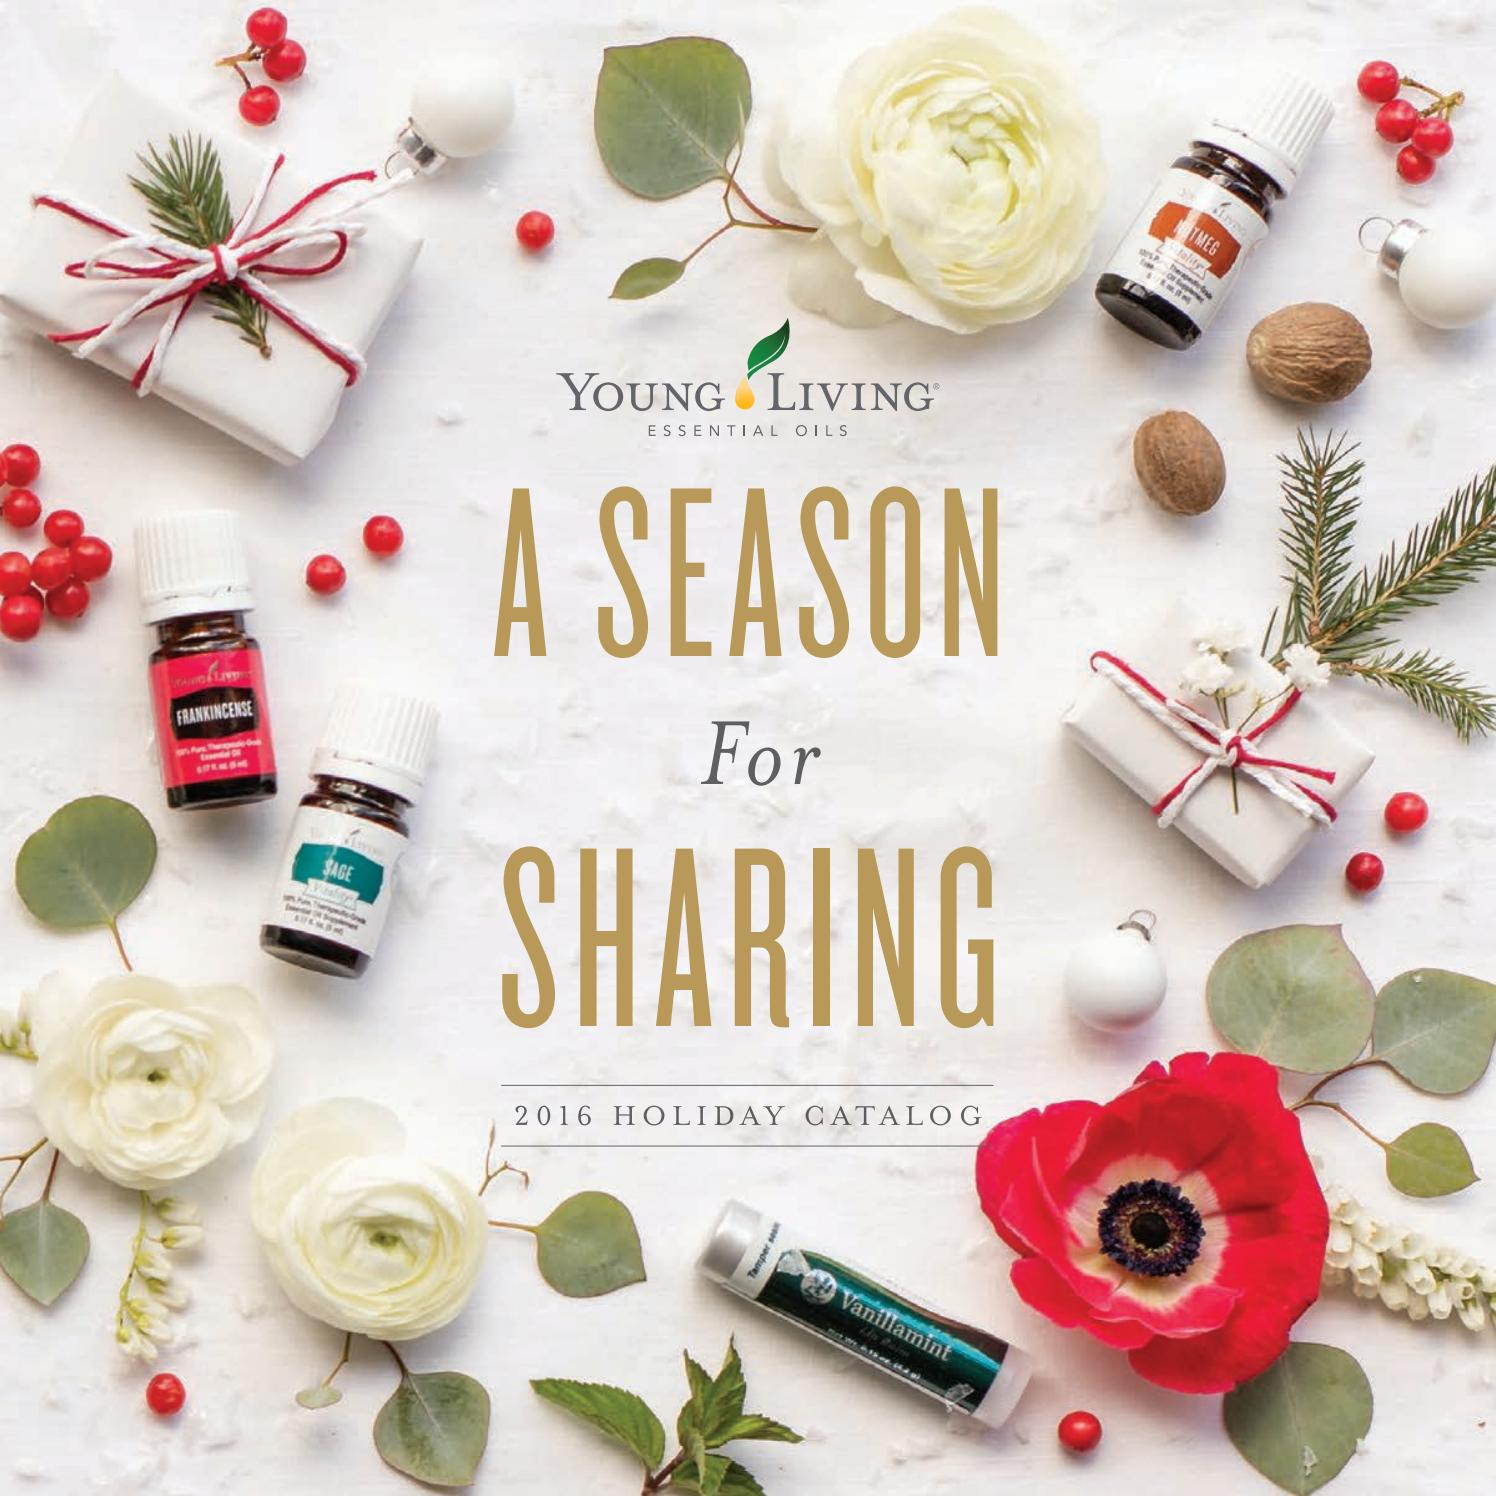 2016 Holiday Catalog By Young Living Essential Oils